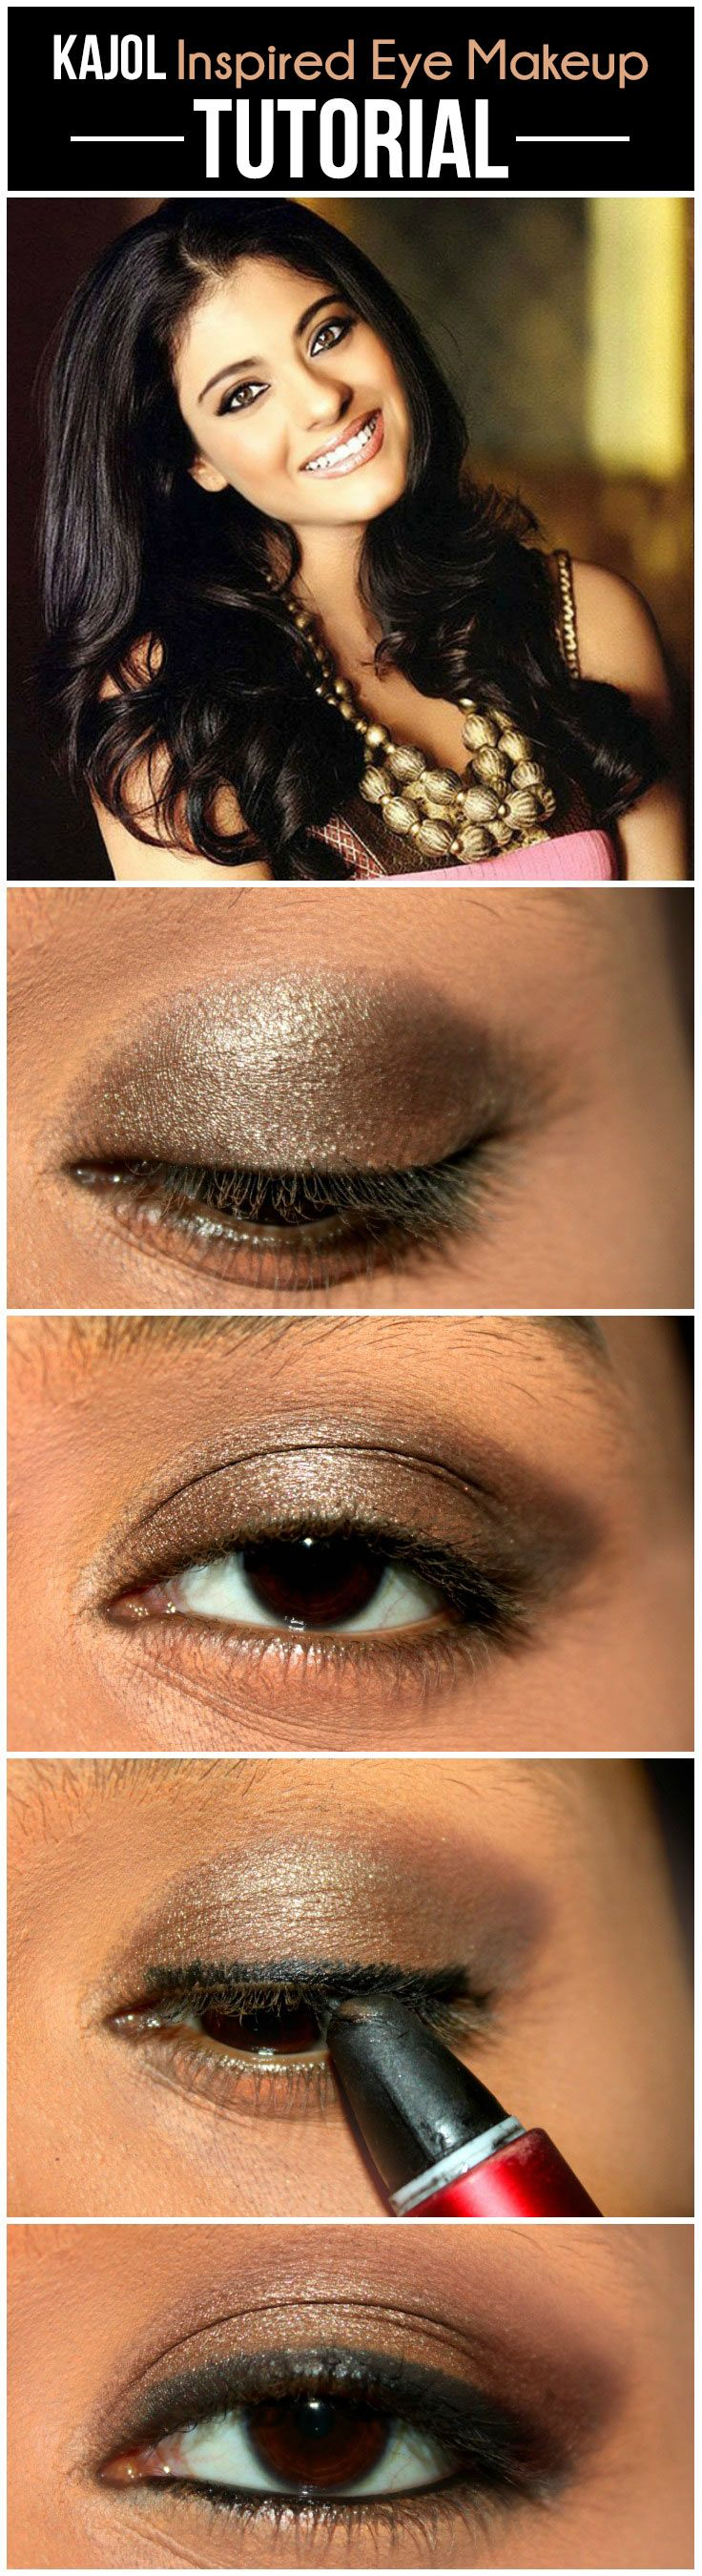 kajol inspired eye makeup – tutorial with detailed steps and